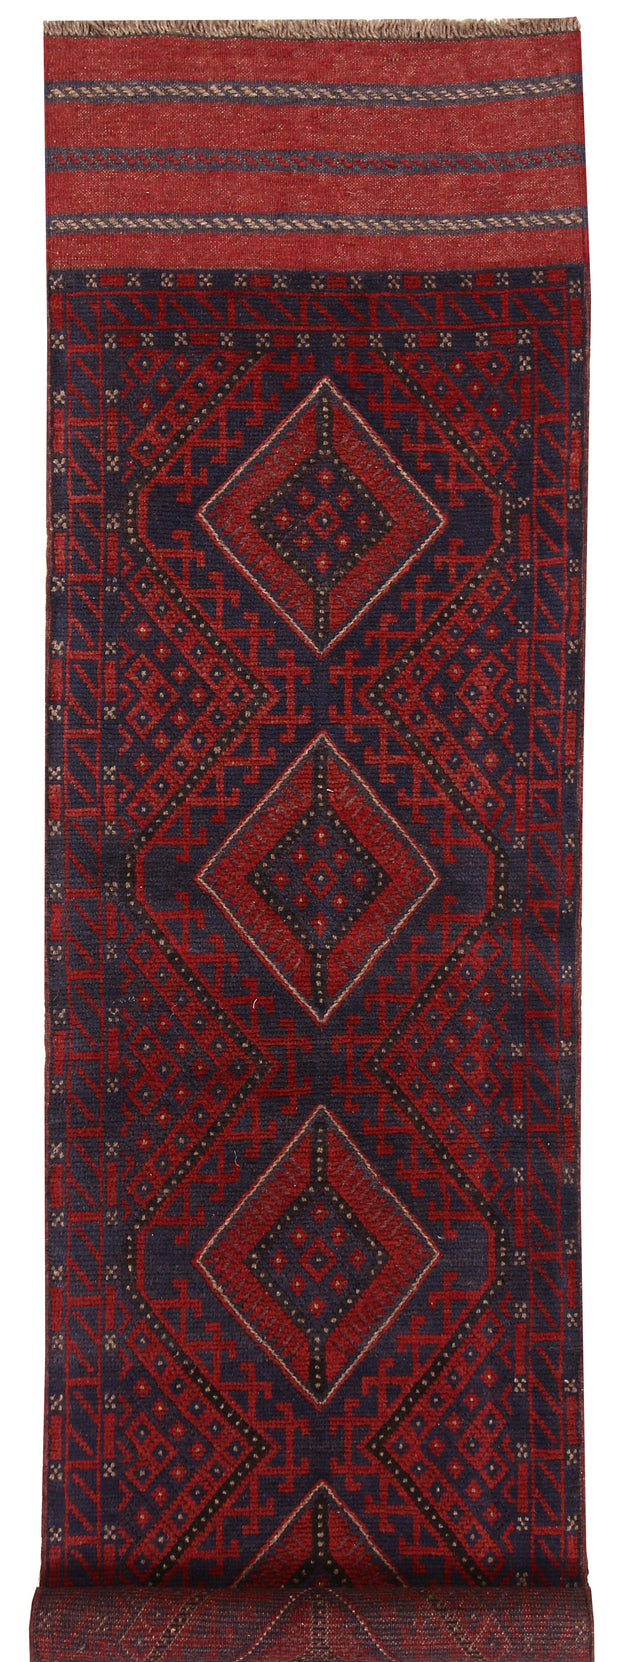 Dark Red Mashwani 2' 1 x 7' 10 - No. 63722 - ALRUG Rug Store